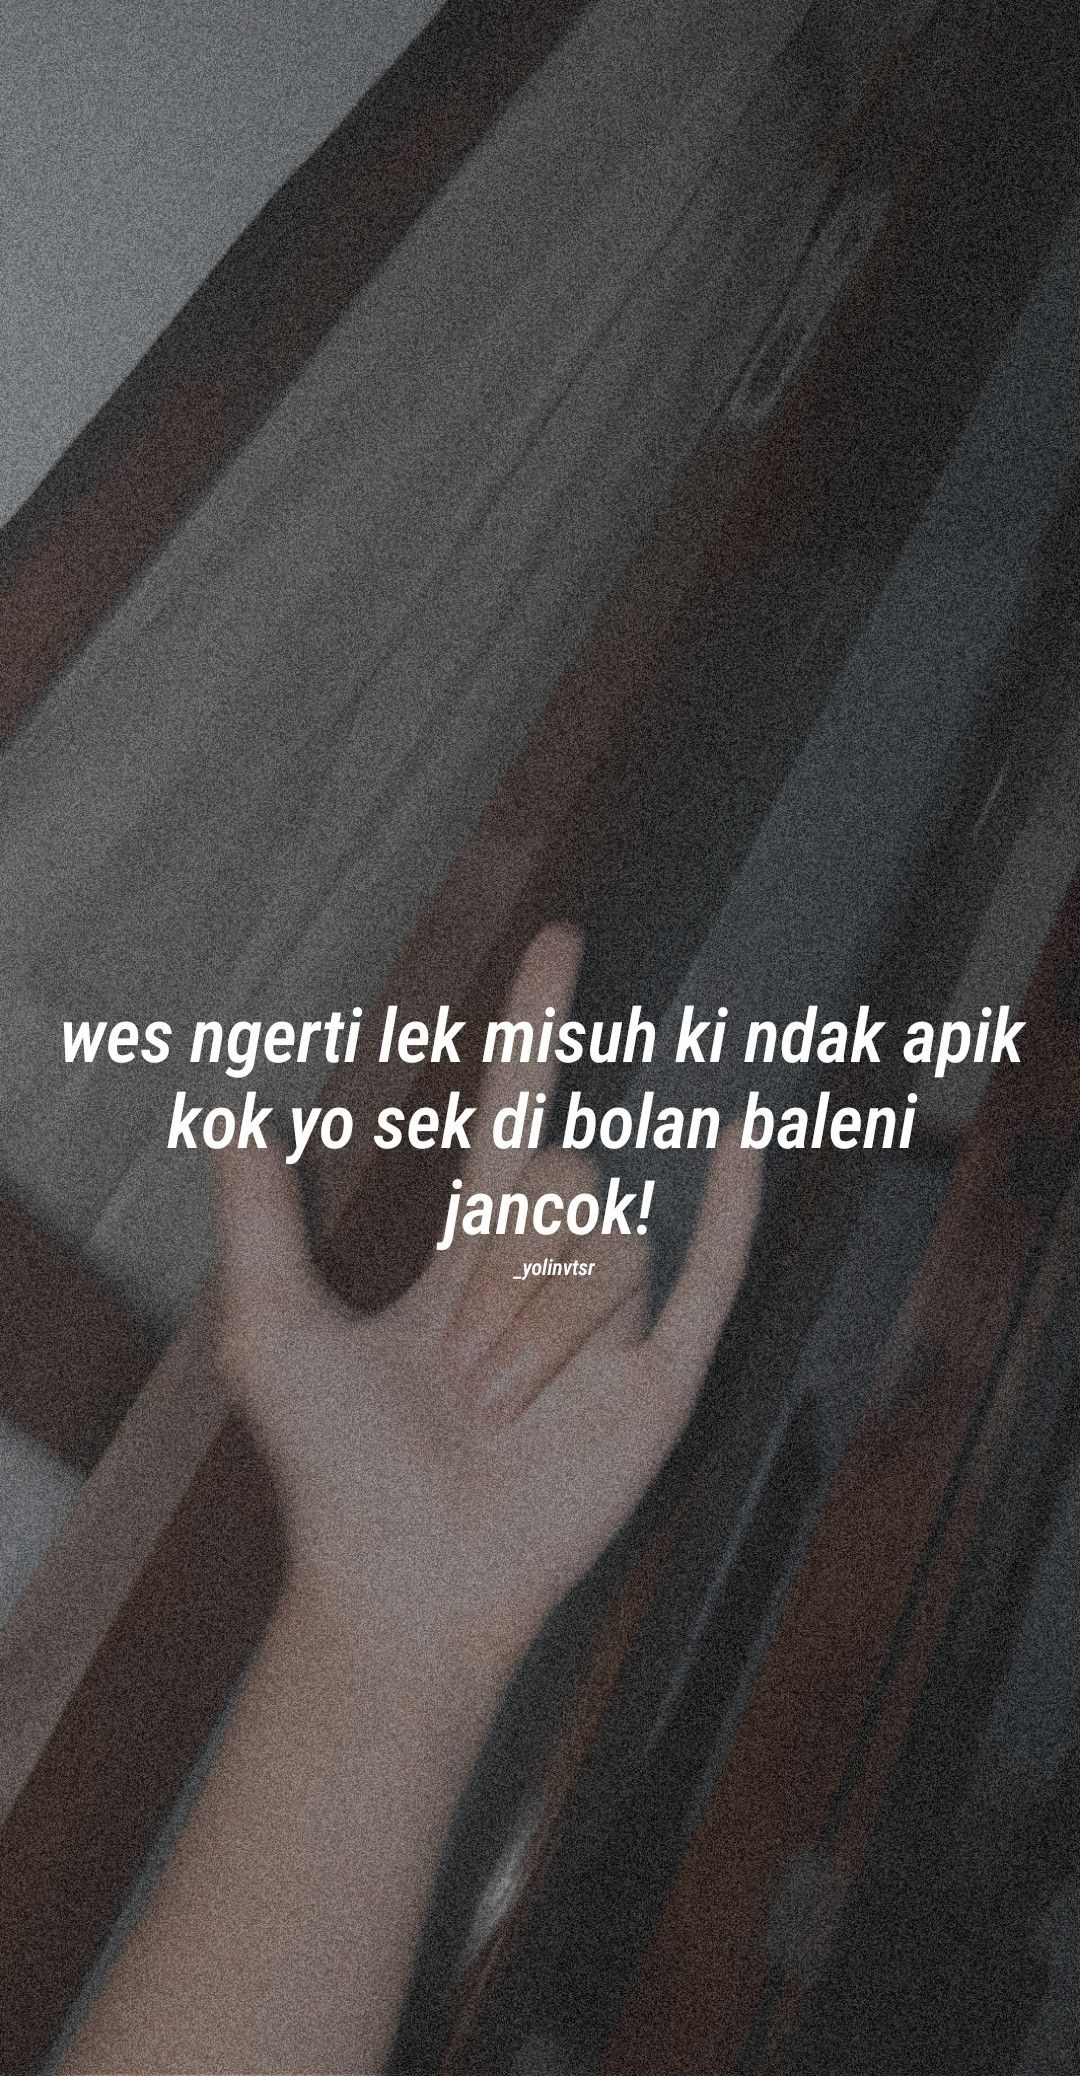 70 Best Kata Kata Images In 2020 Quotes Indonesia Quotes Fangirl